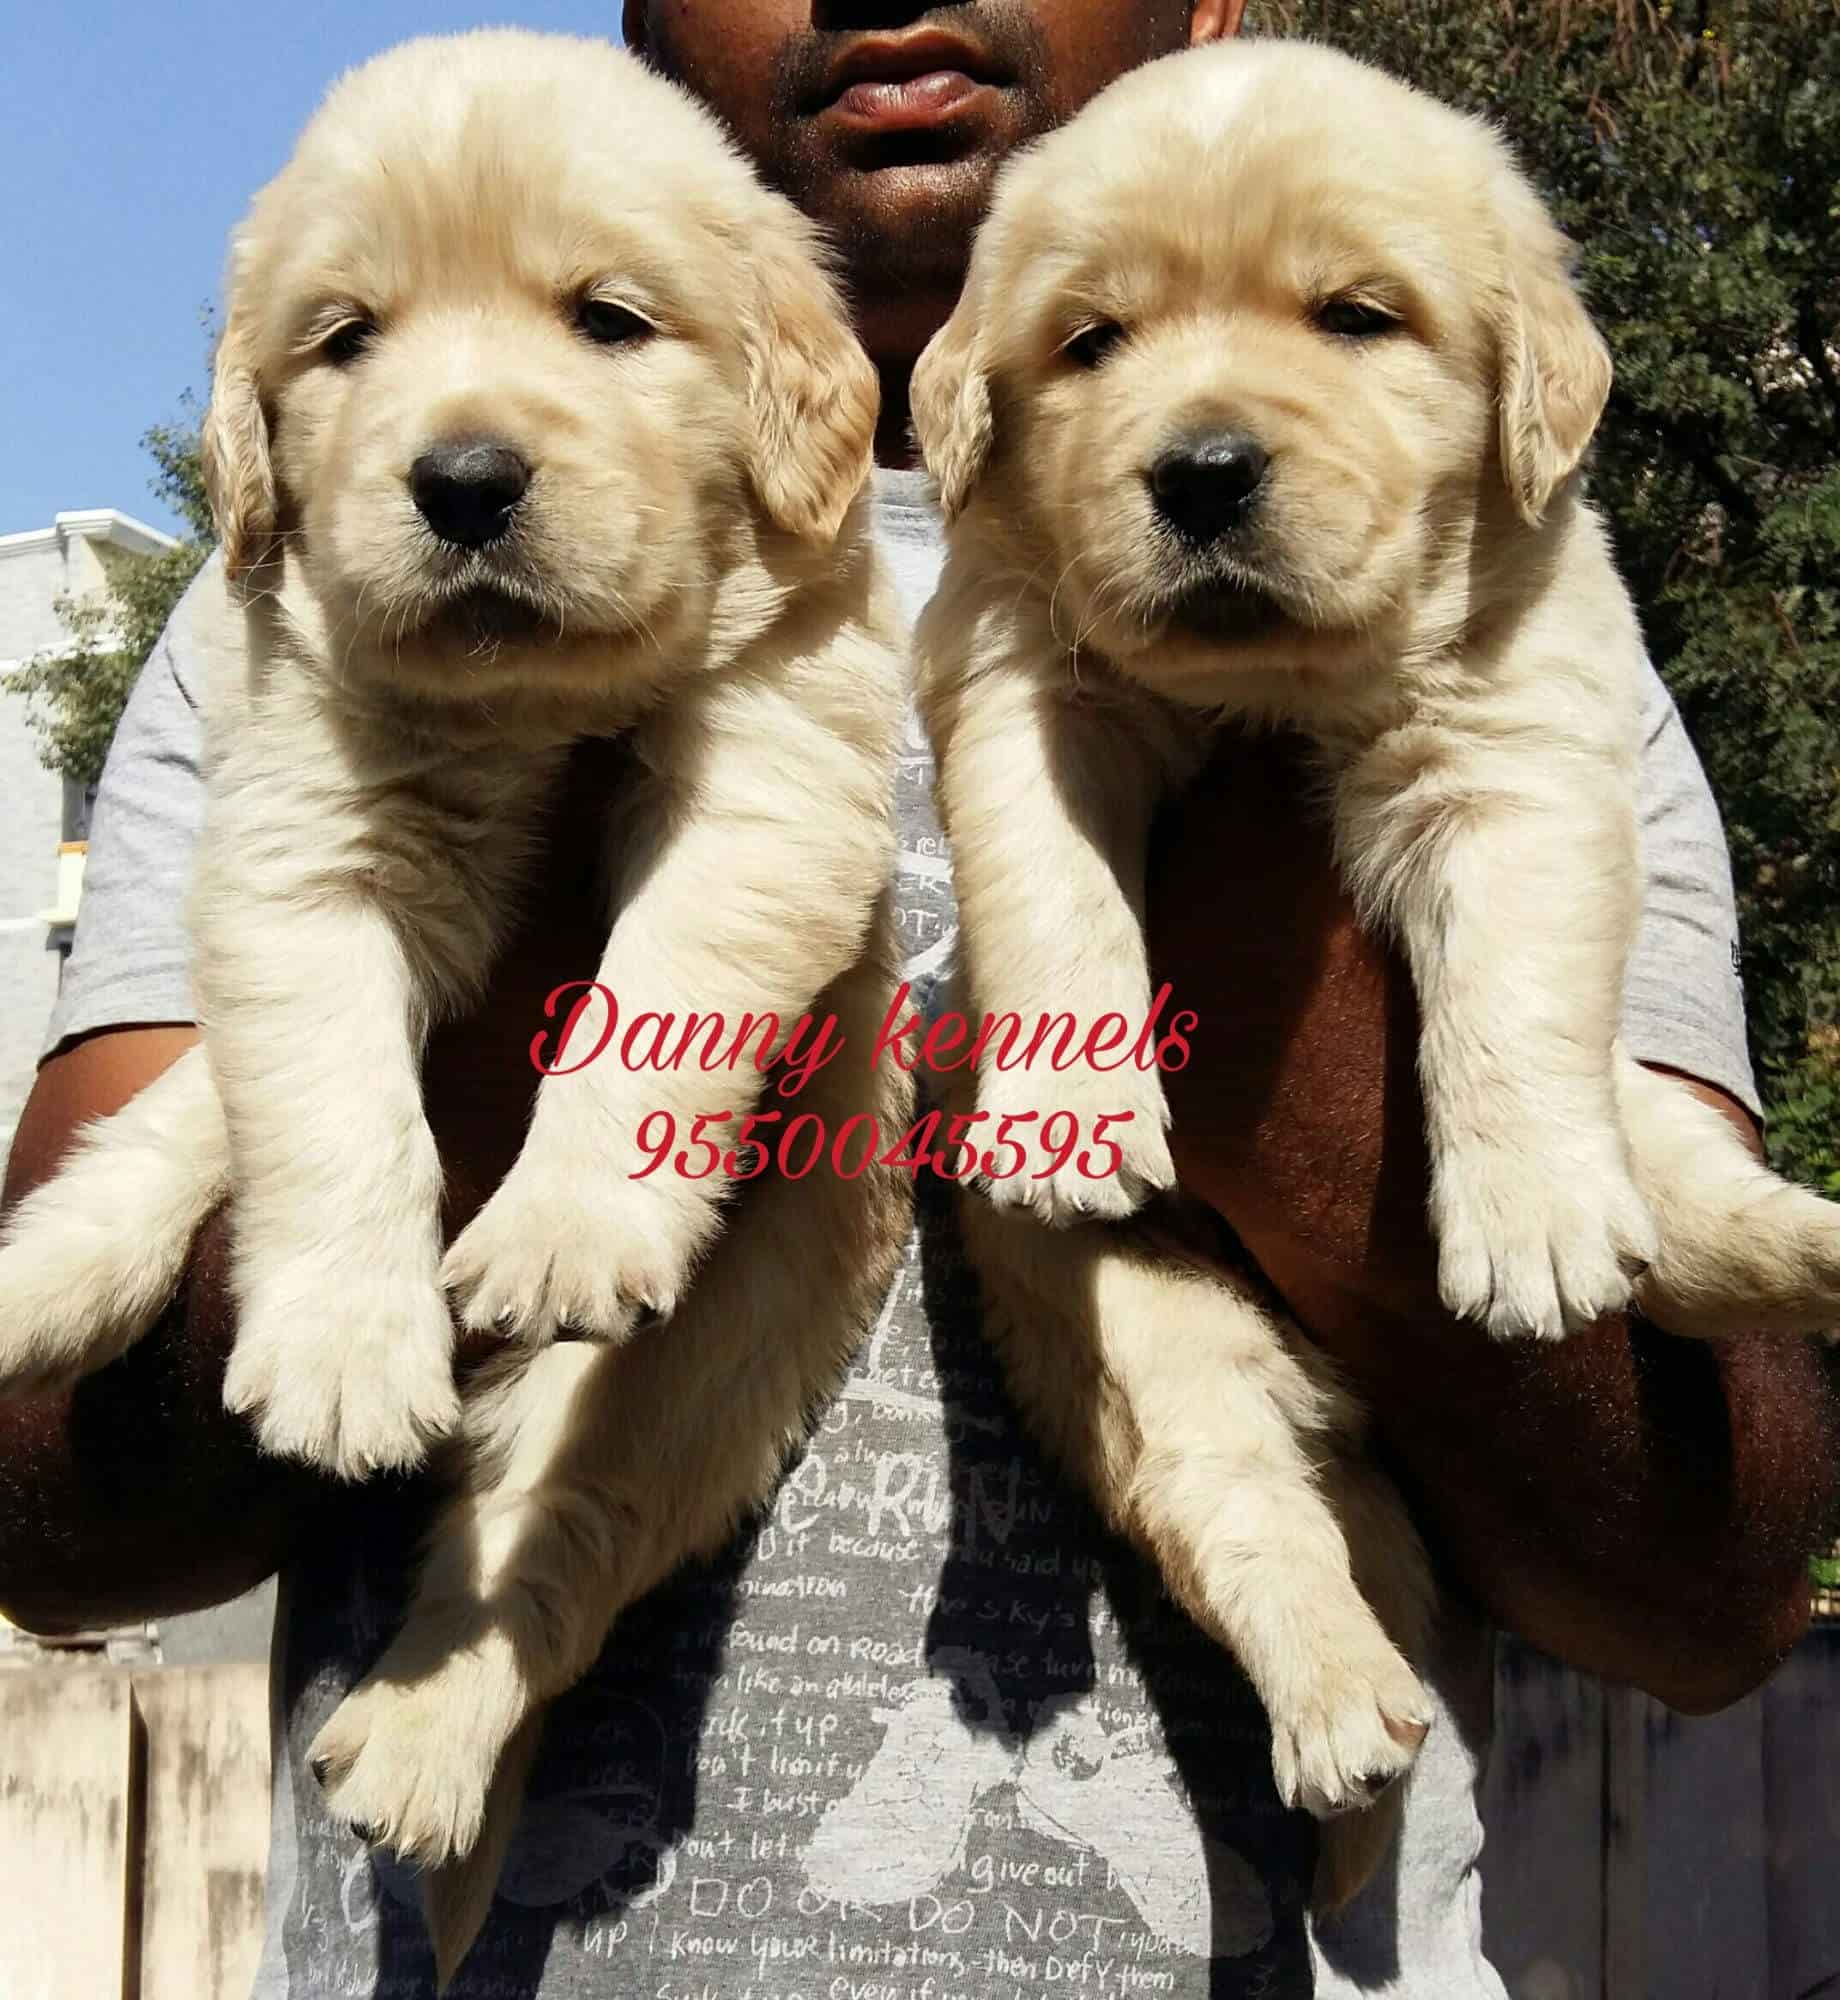 Danny Kennels Secunderabad Kennel Service In Hyderabad Justdial